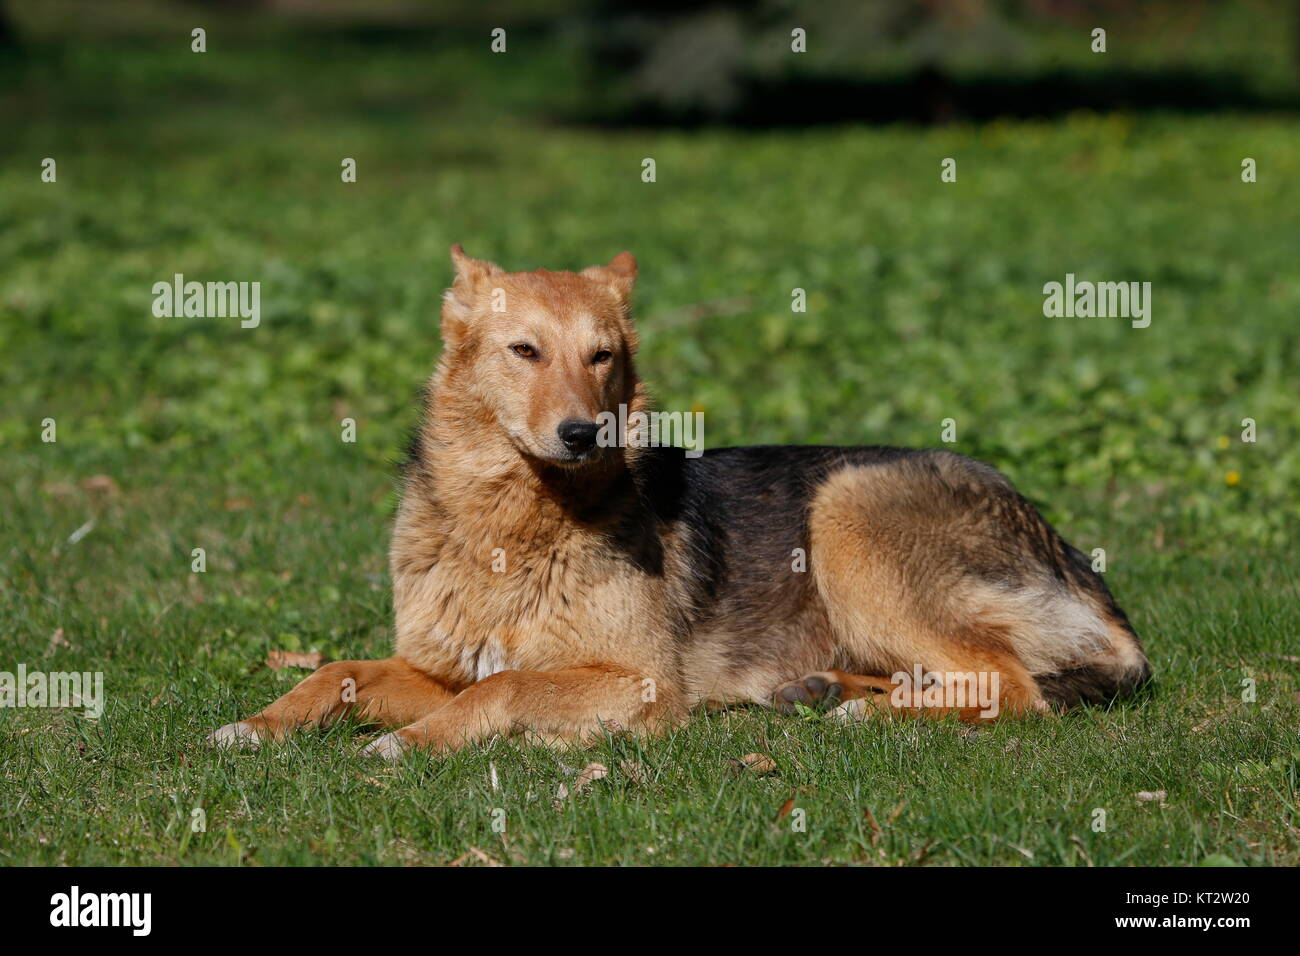 Big dog lying on the grass.Street dog. An unrelated animal. Friend of human.A lonely dog. A non-pedigree dog - Stock Image